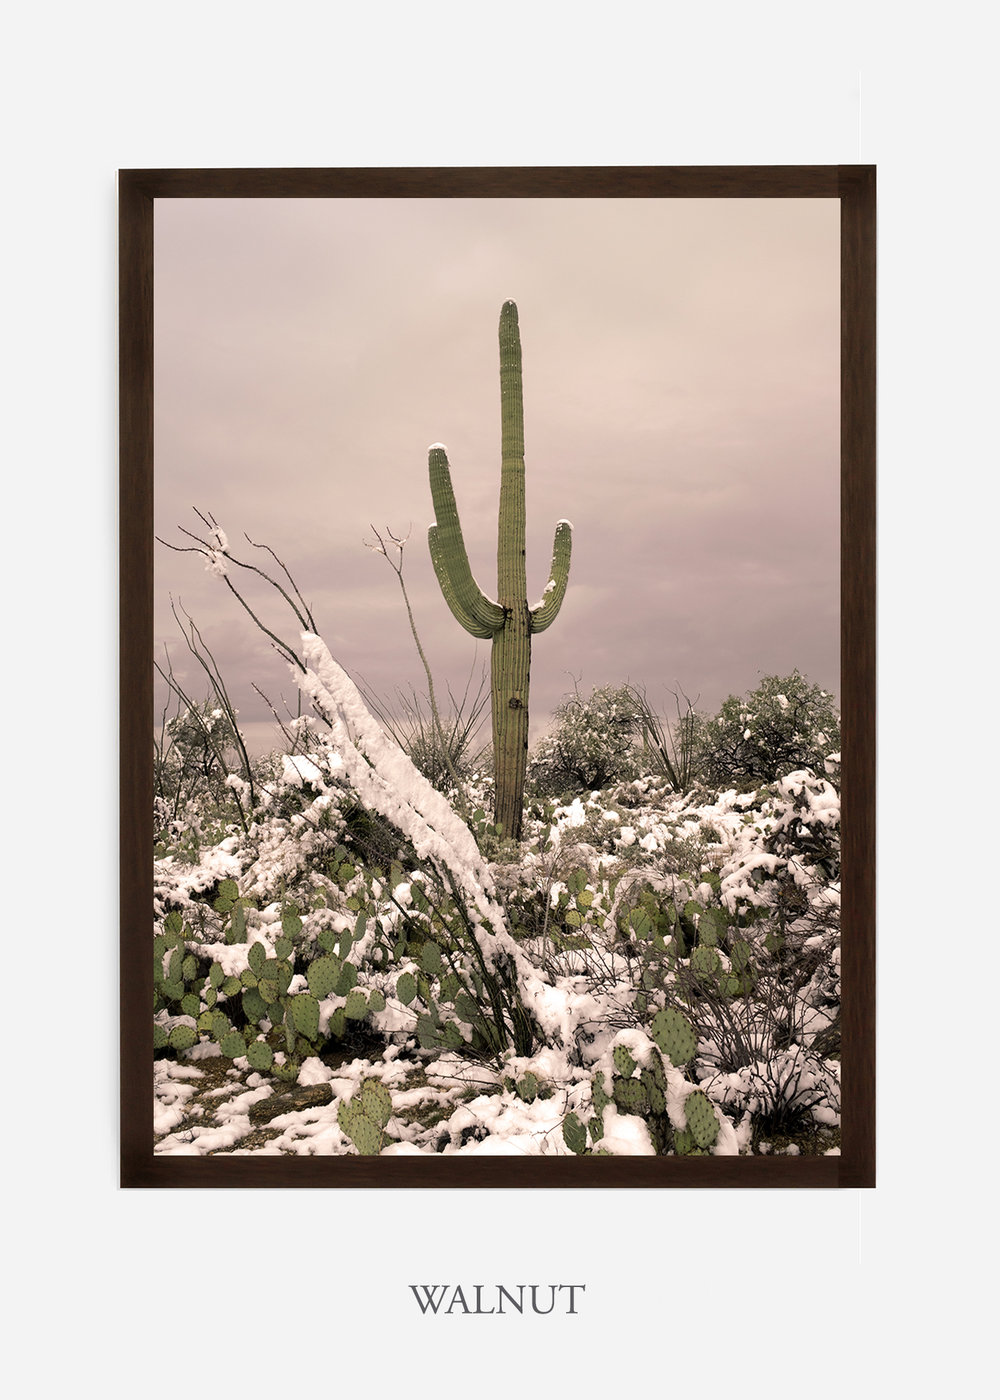 nomat-walnutframe-saguaroNo.4-wildercalifornia-art-wallart-cactusprint-homedecor-prints-arizona-botanical-artwork-interiordesign.jpg